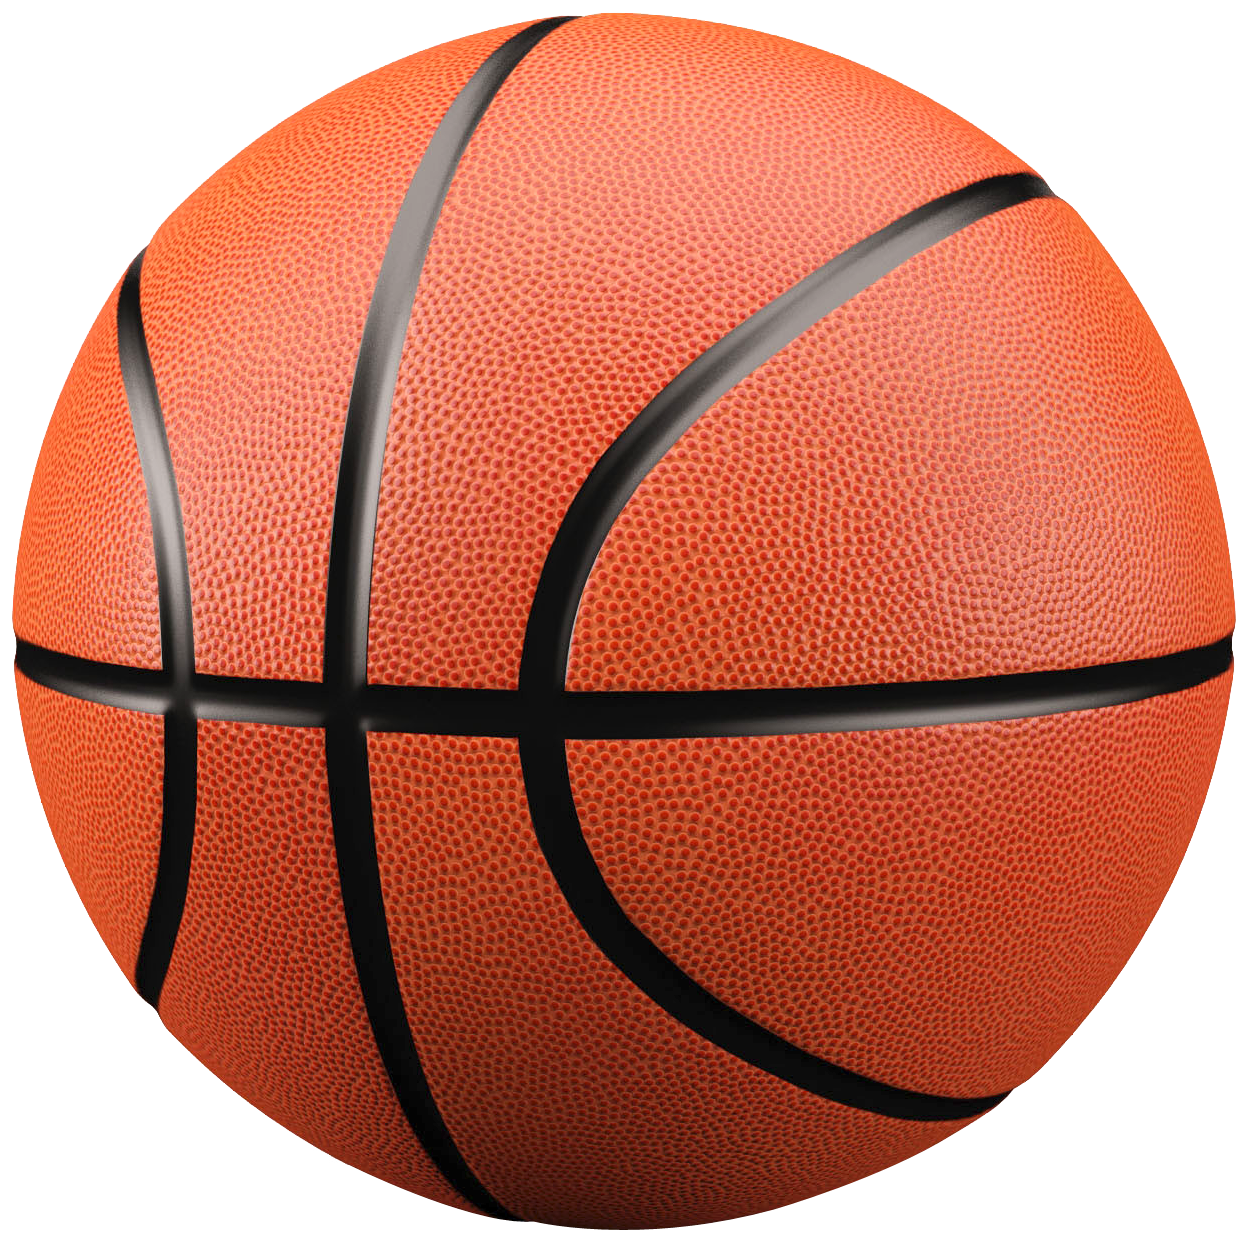 Basketball ball png. Hd transparent images pluspng